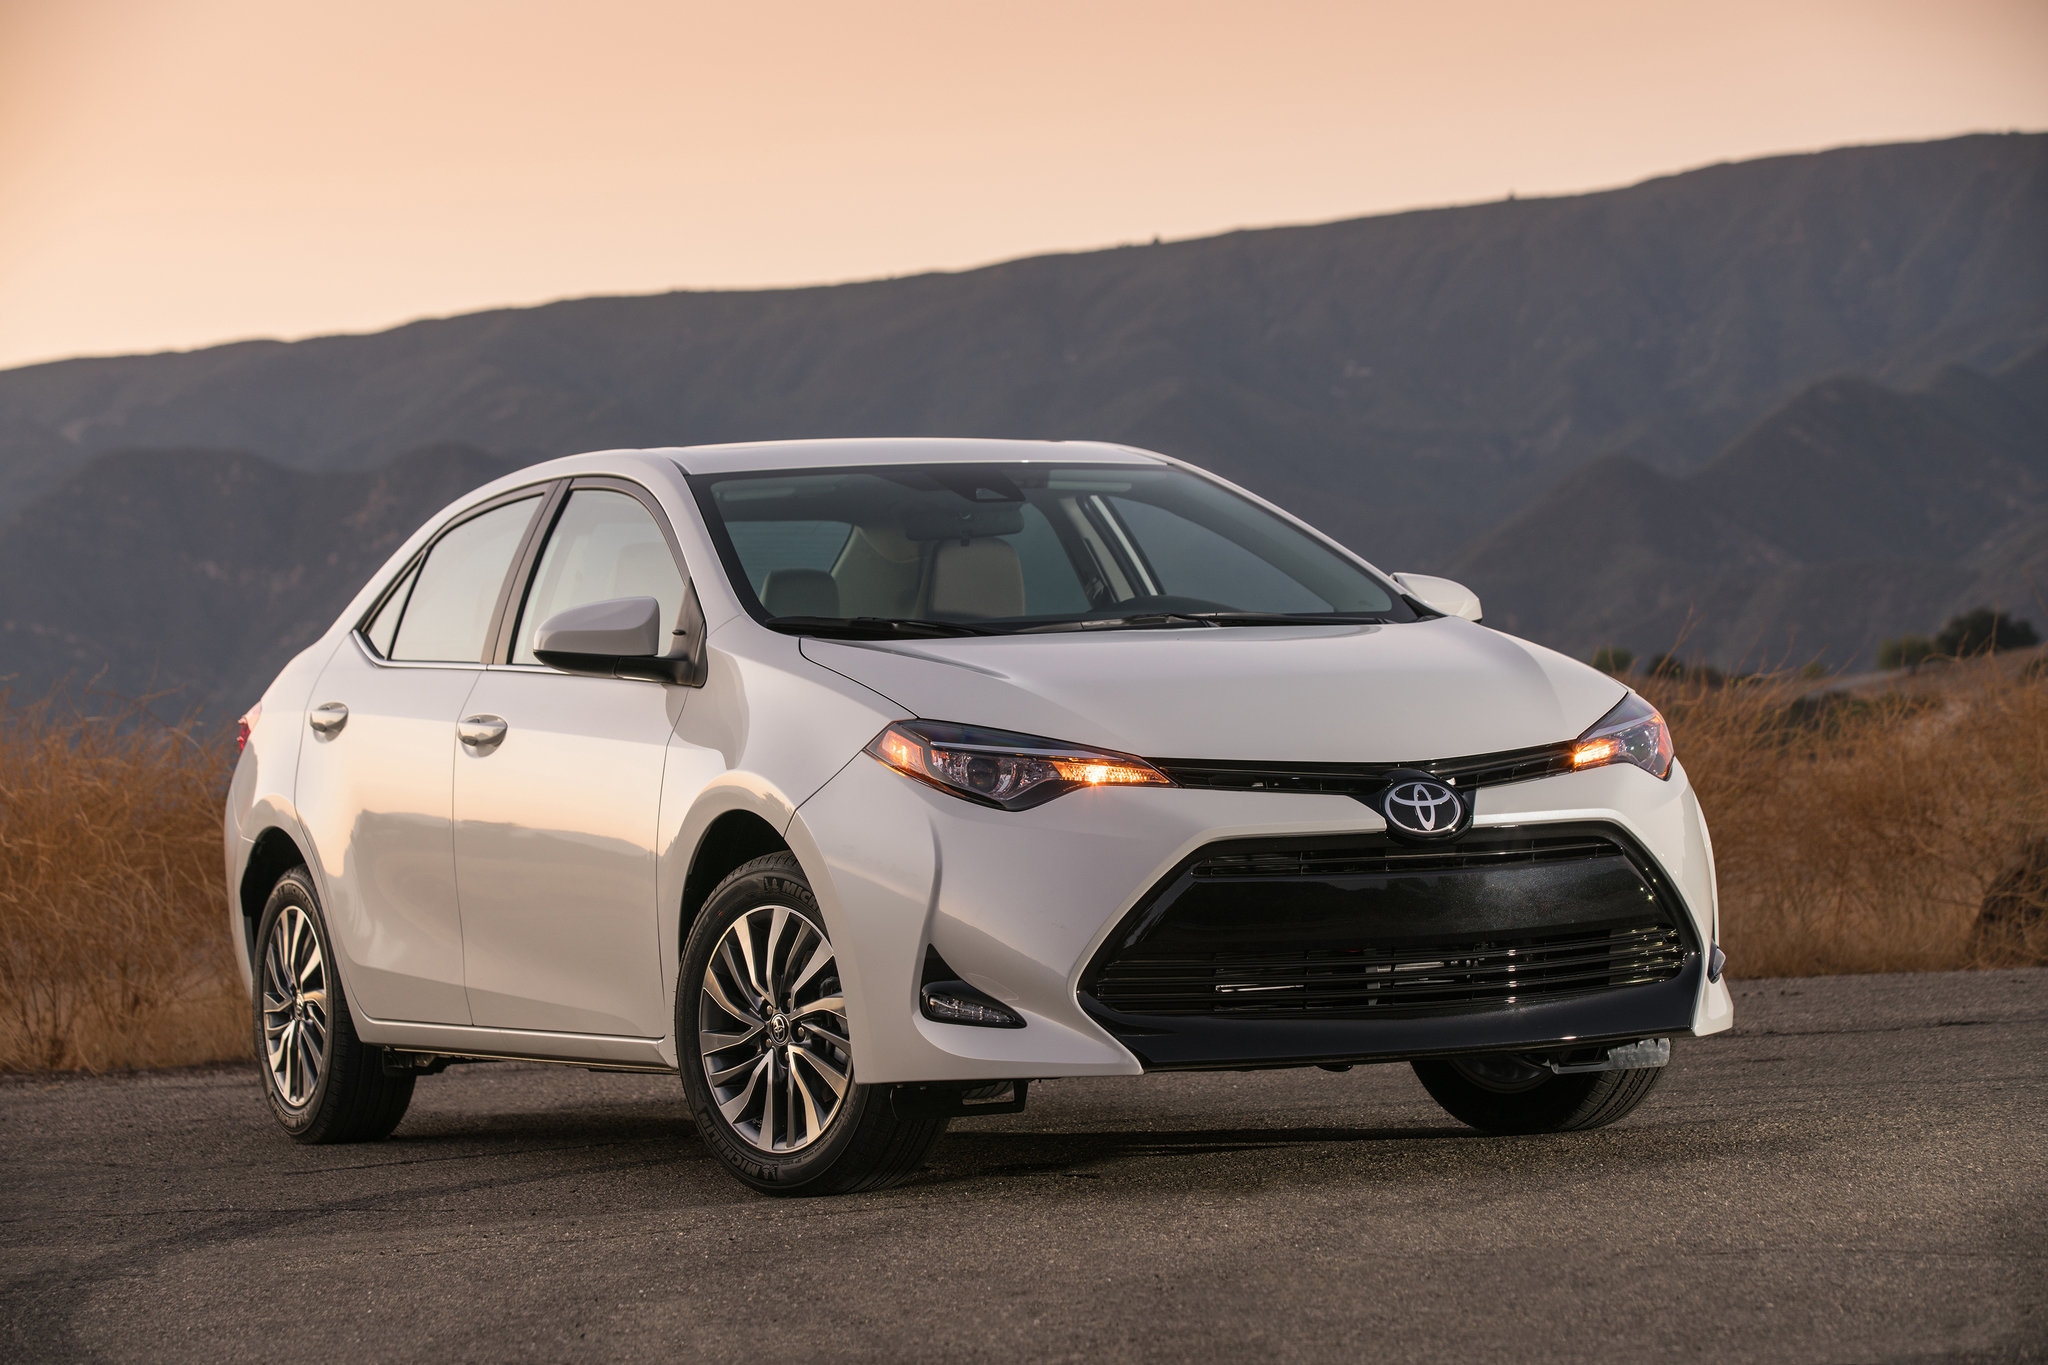 2017 Toyota Corolla Eco 029 D628d610b0f1bac1ad49efe191041ea2969afc68 Jpg David Dewhurst Photography What I Liked The Xle